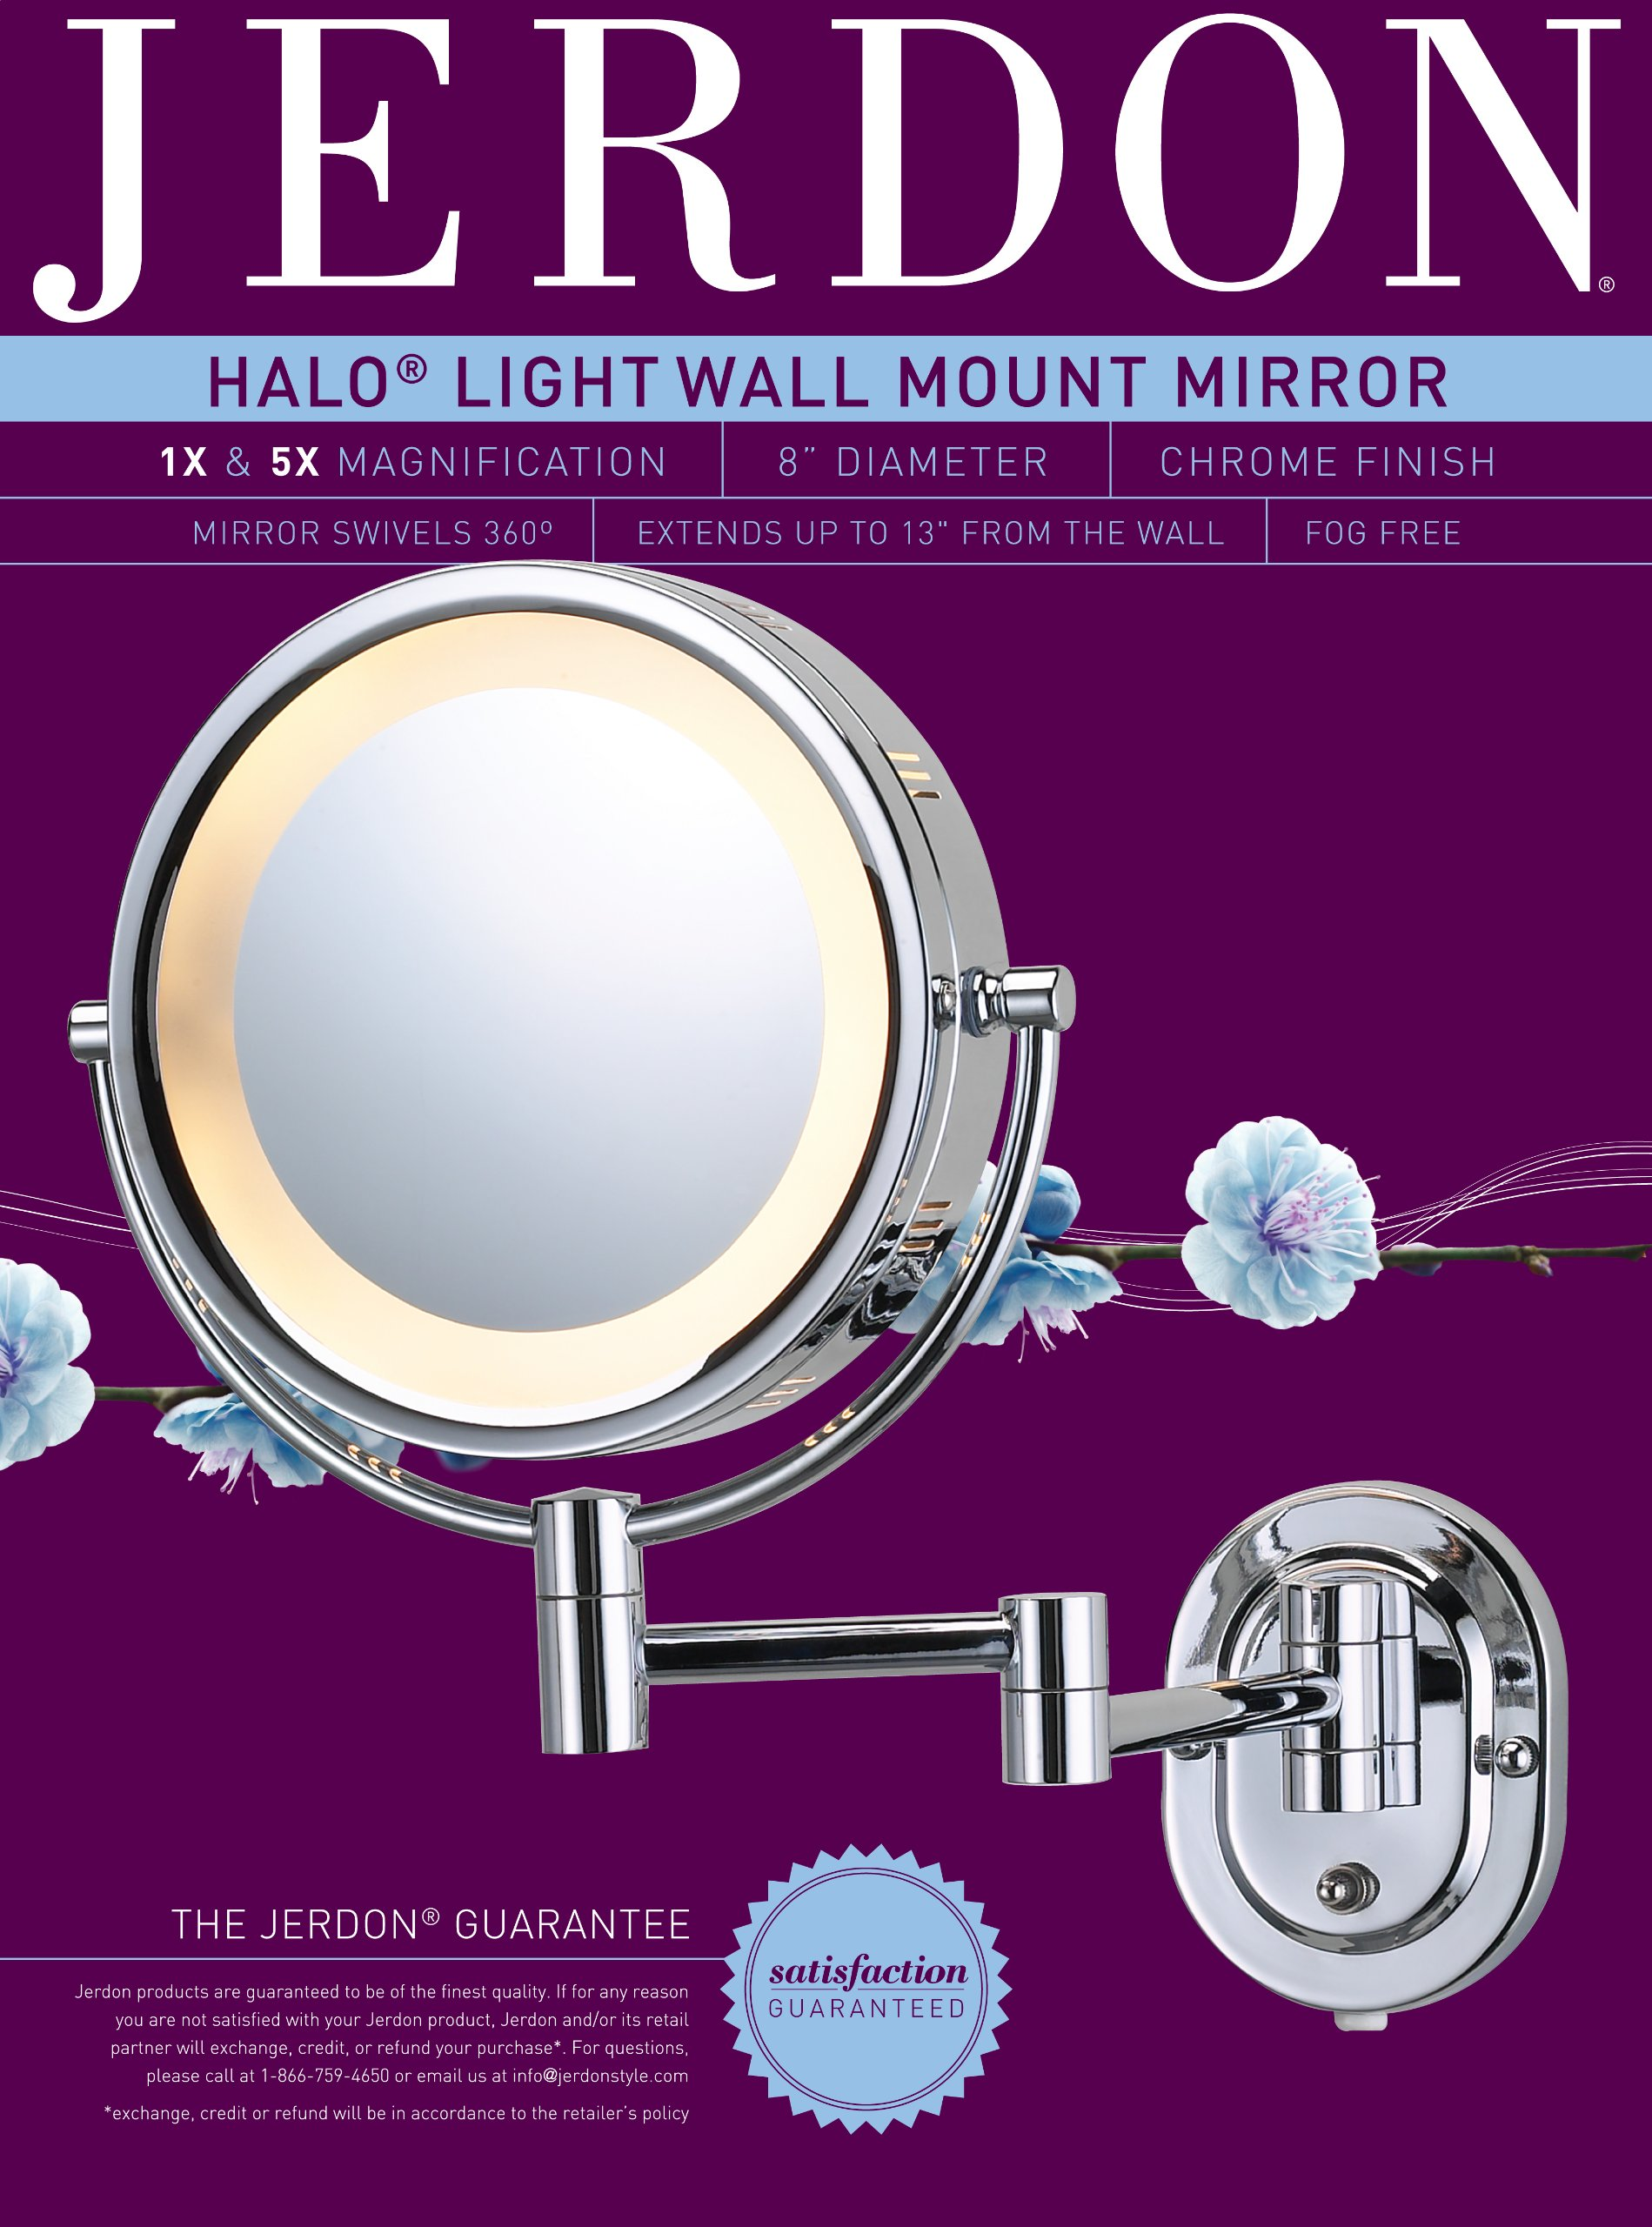 Jerdon HL65C 8-Inch Lighted Wall Mount Makeup Mirror with 5x Magnification, Chrome Finish by Jerdon (Image #1)